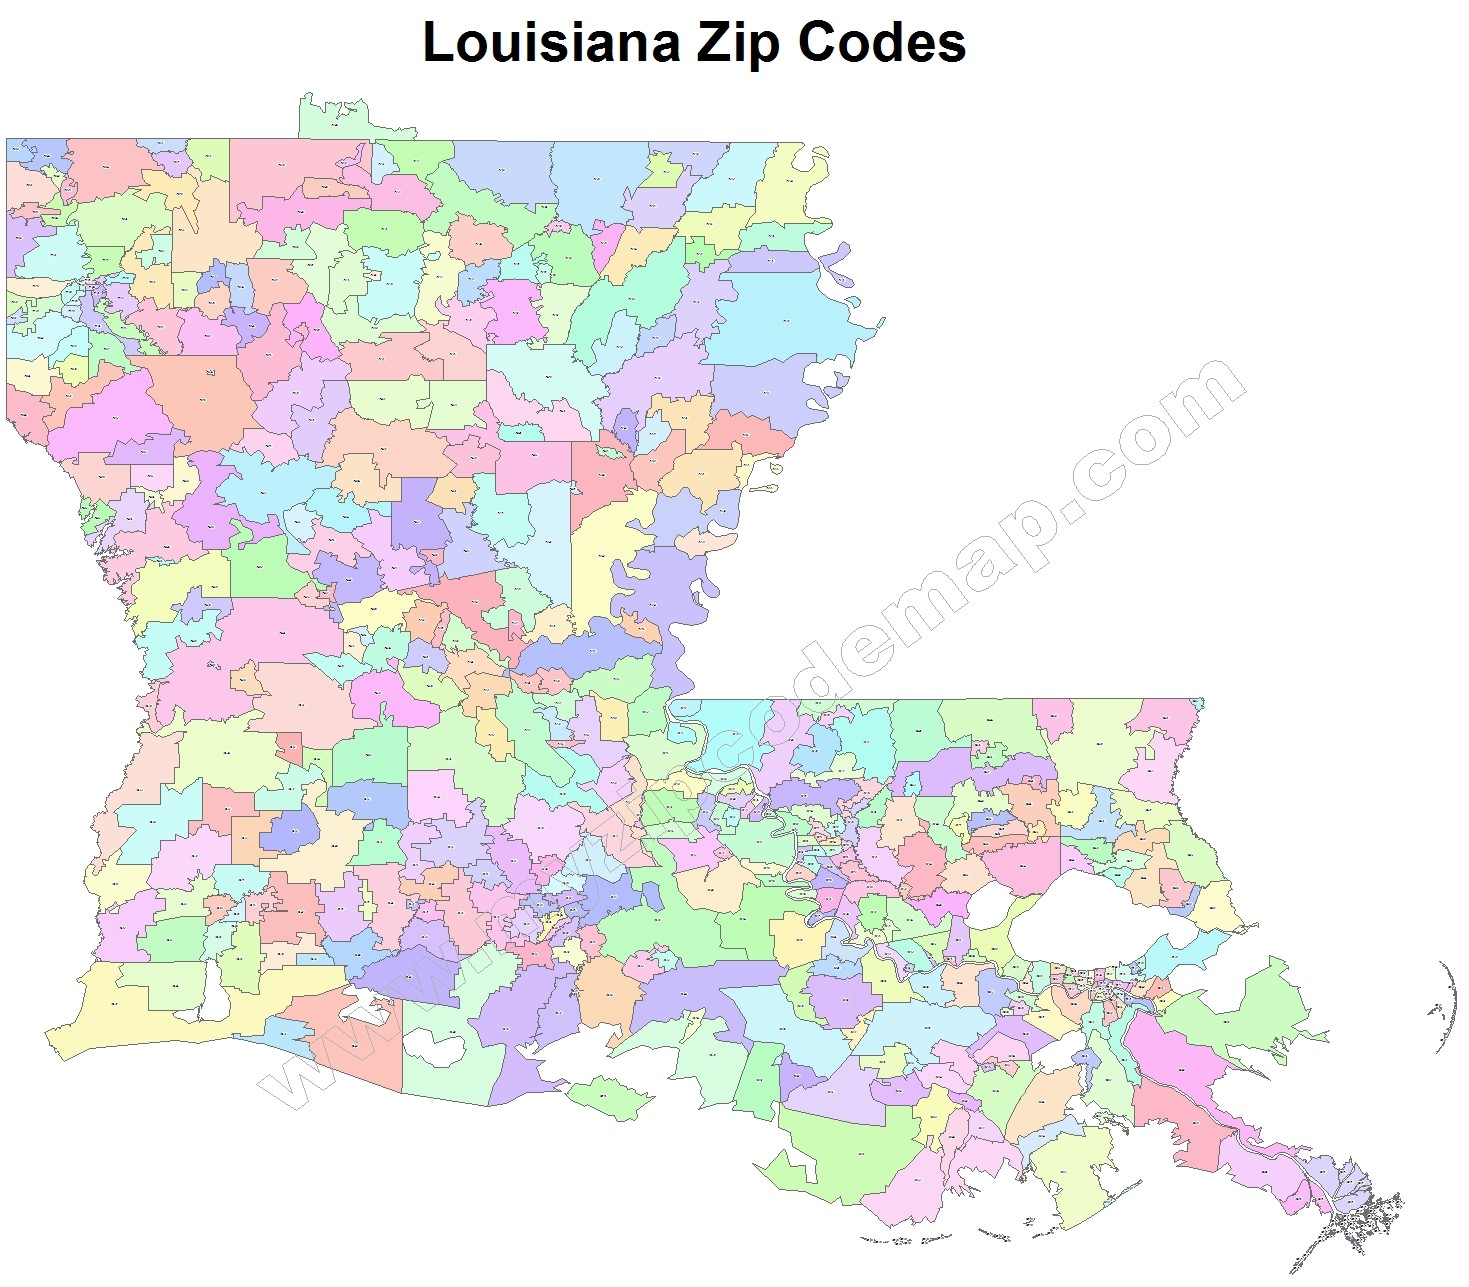 Louisiana Zip Code Maps - Free Louisiana Zip Code Maps